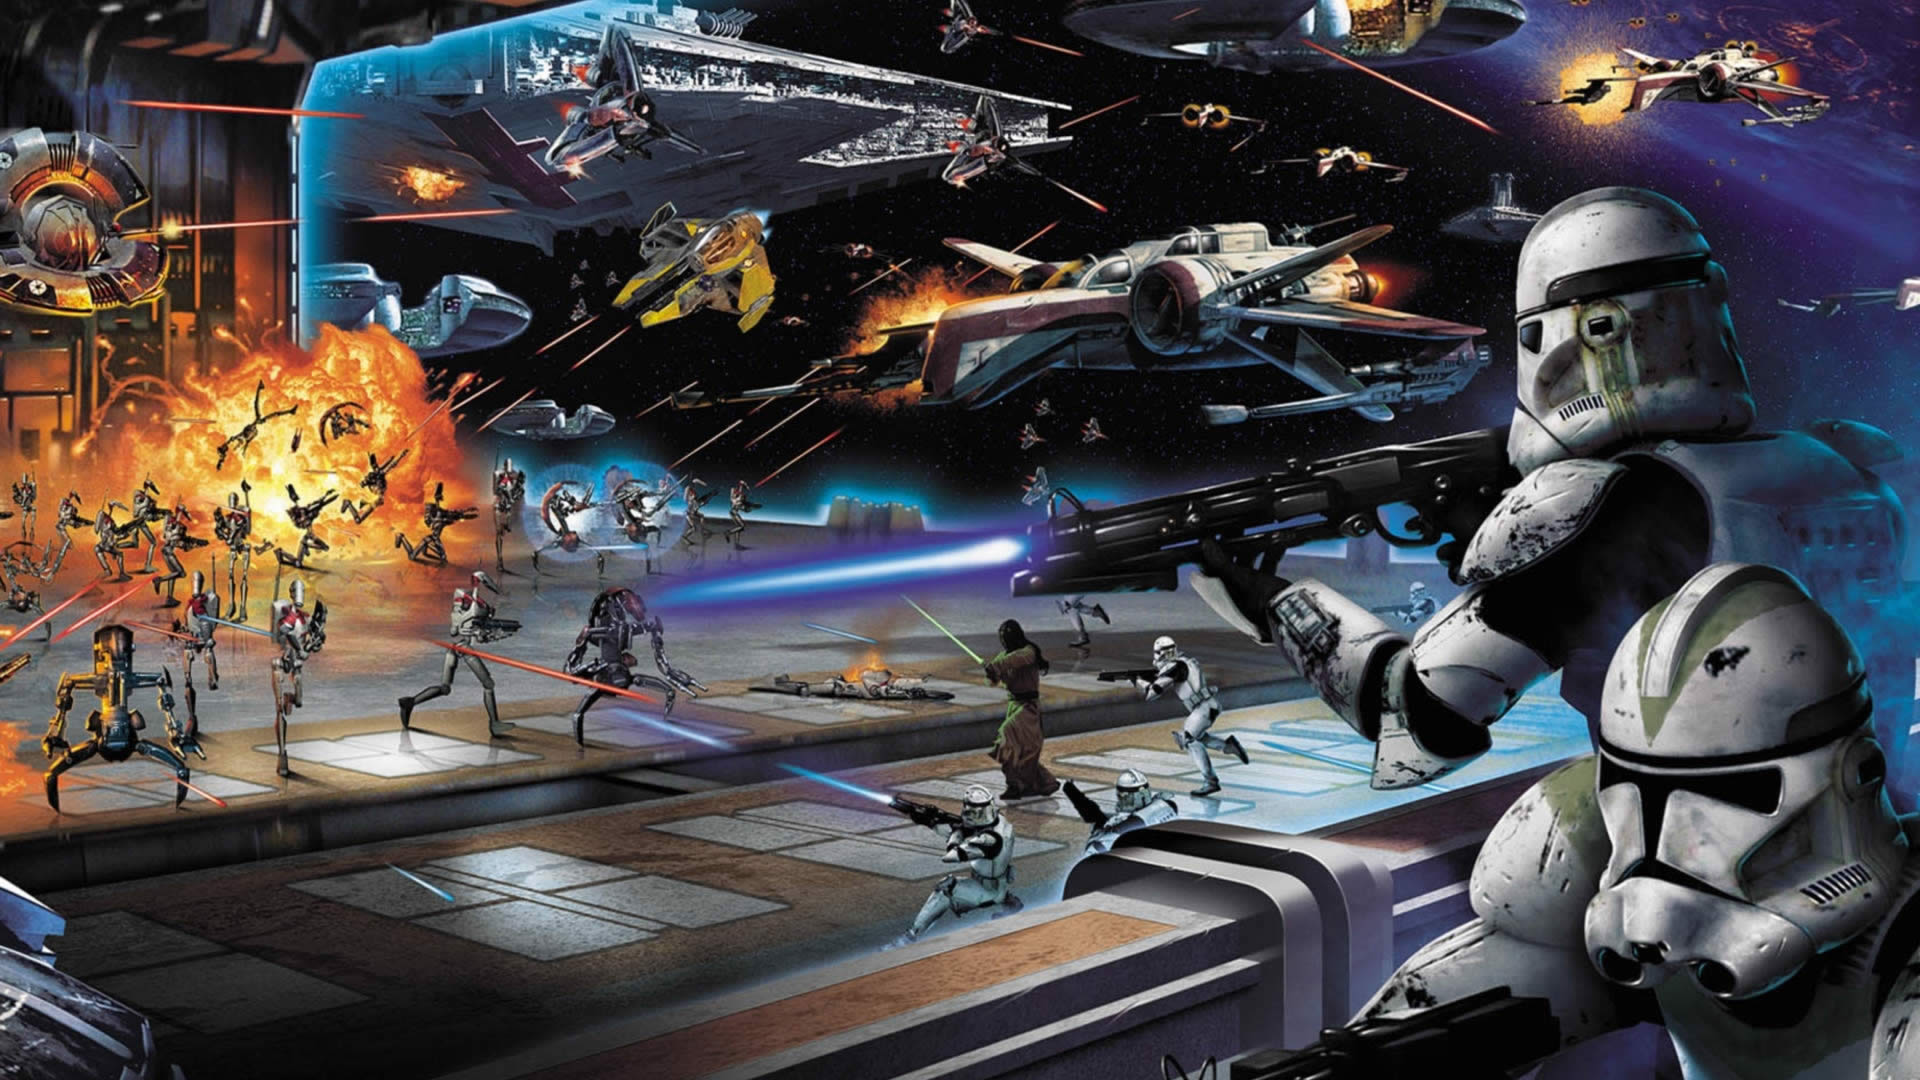 Epic Star Wars Wallpapers   Top Epic Star Wars Backgrounds 1920x1080